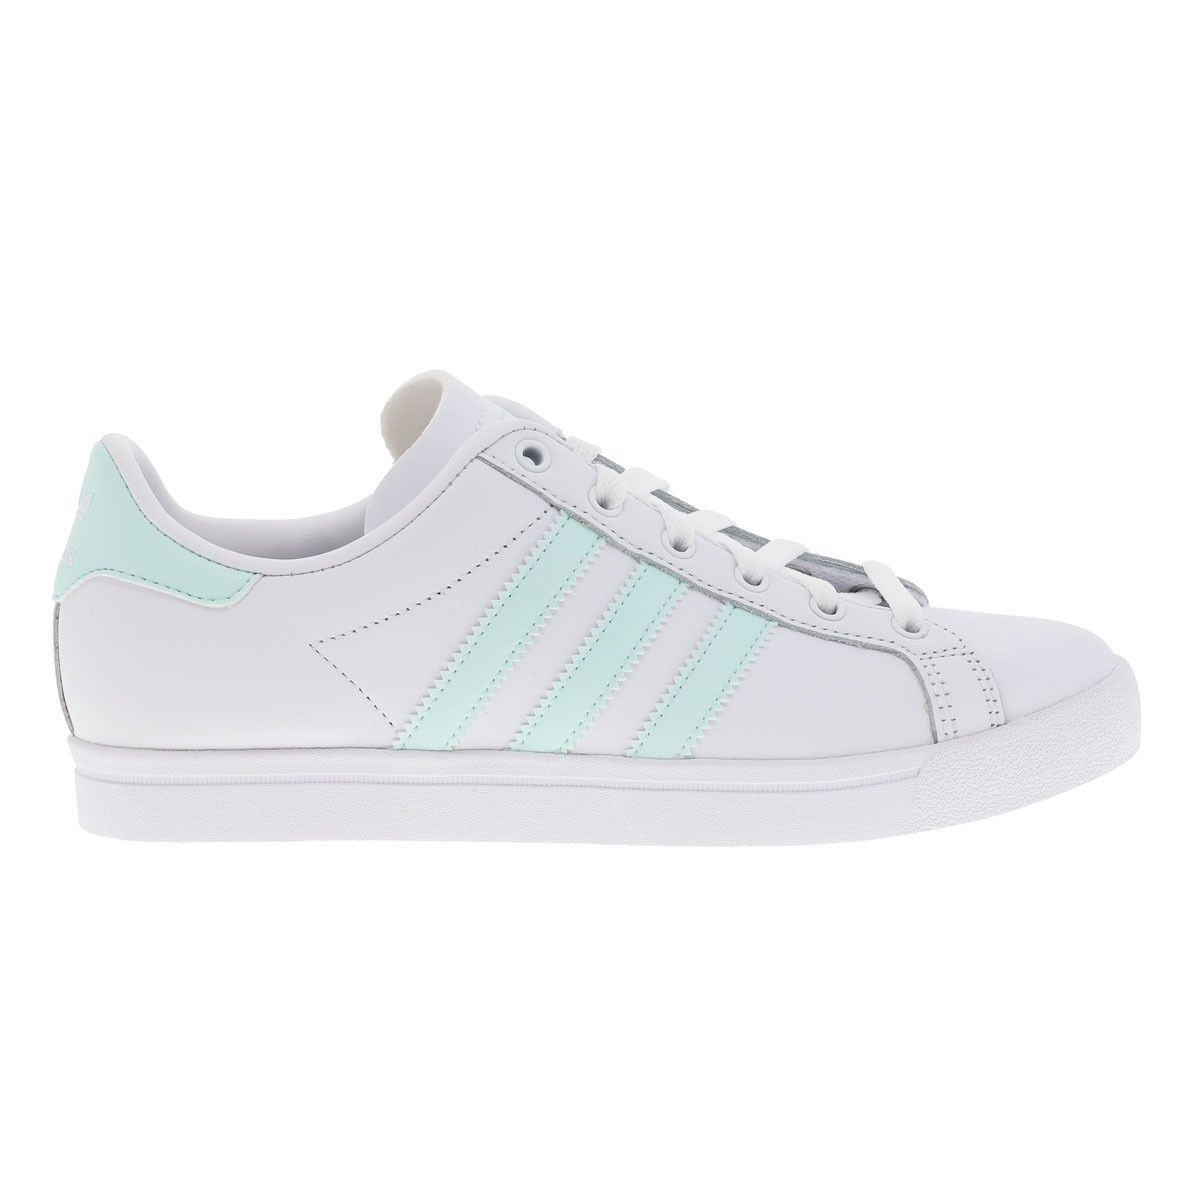 ADIDAS ORIGINALS Baskets Coast Star femme blanc